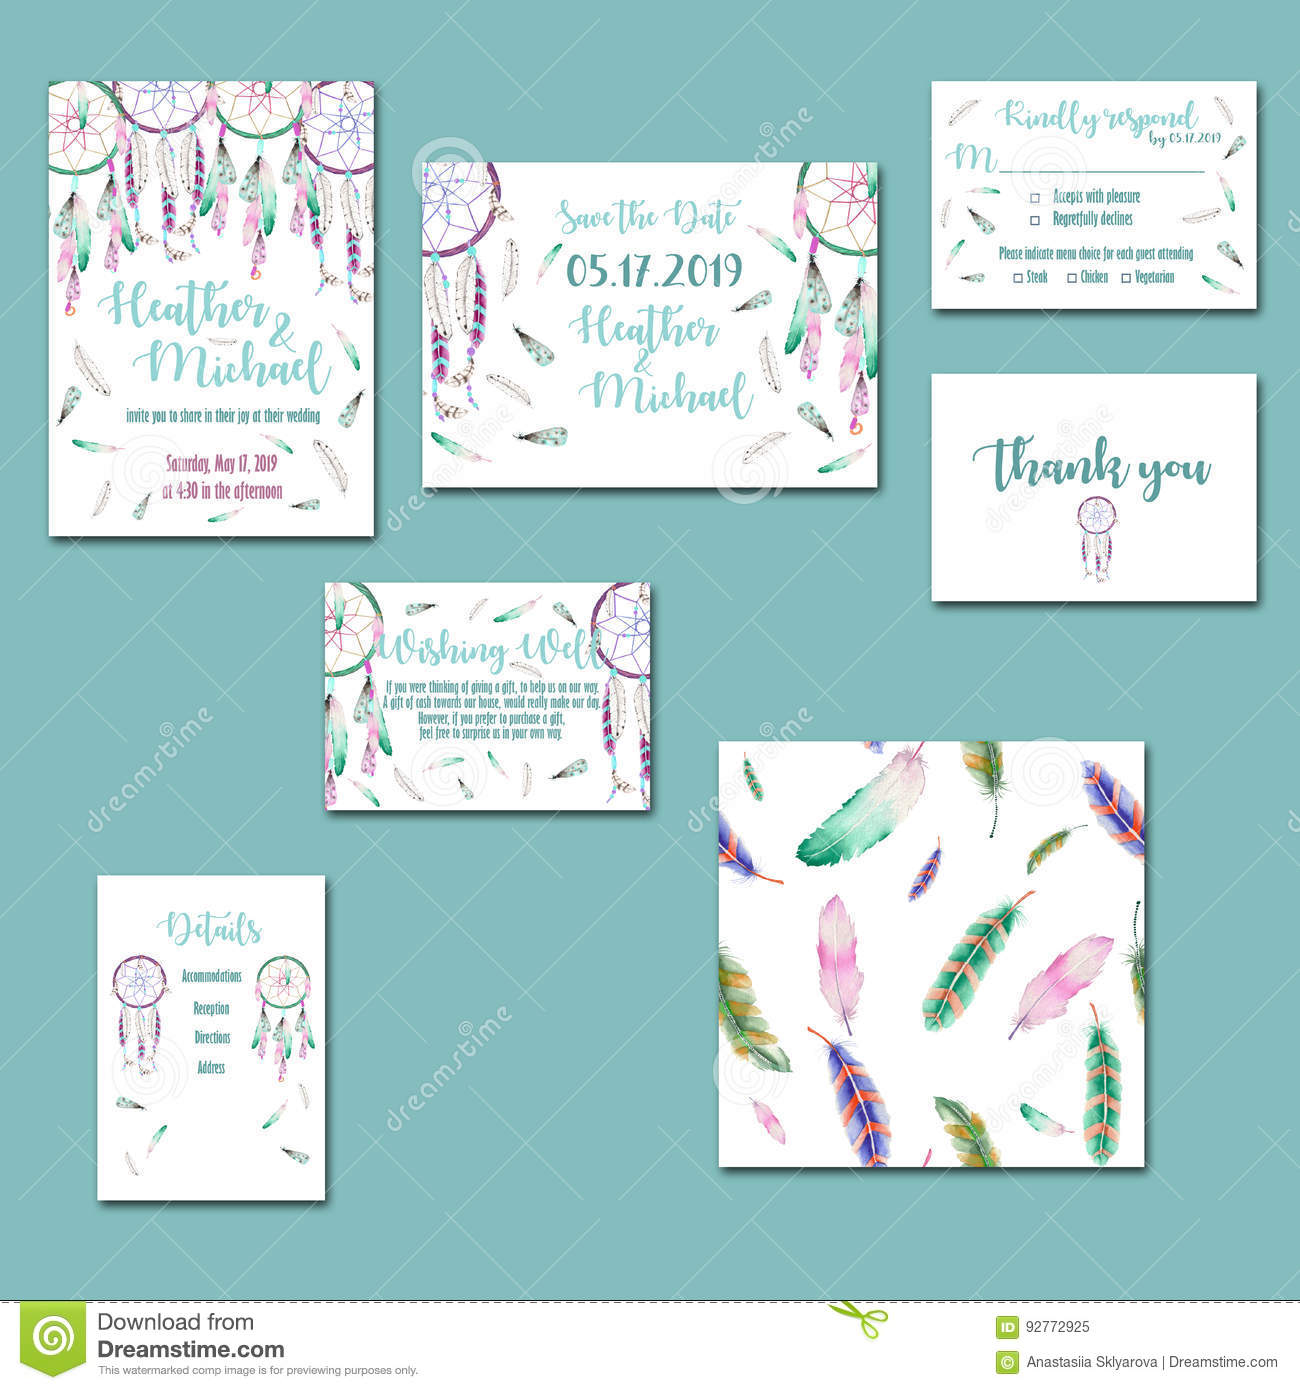 template cards set with watercolor dream catchers stock illustration